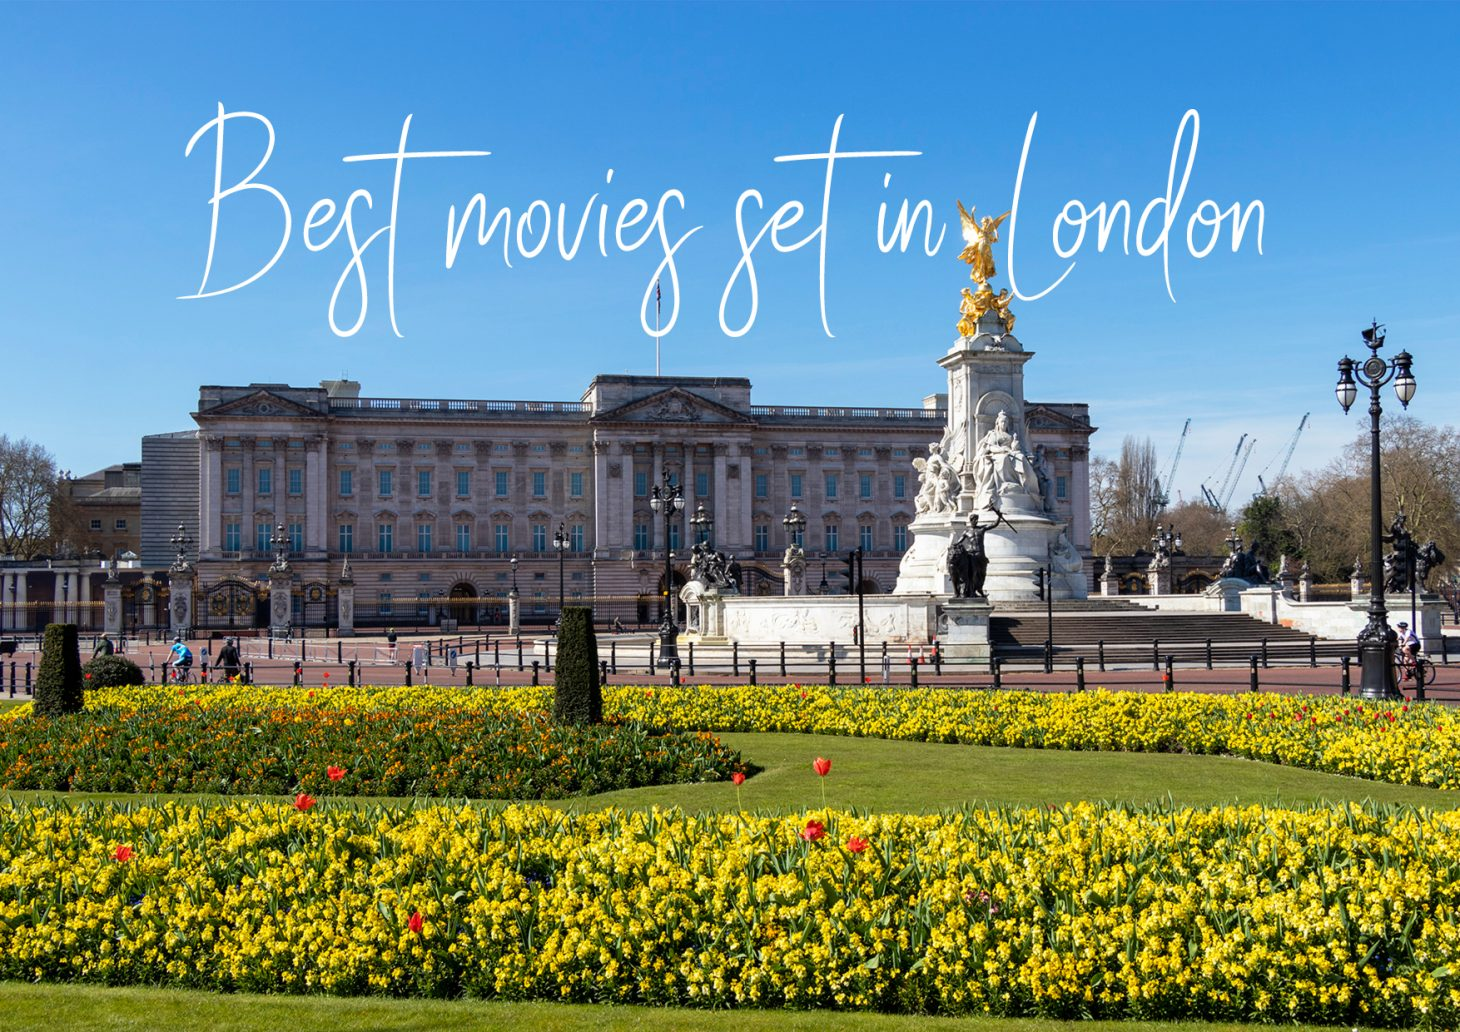 Best movies set in London